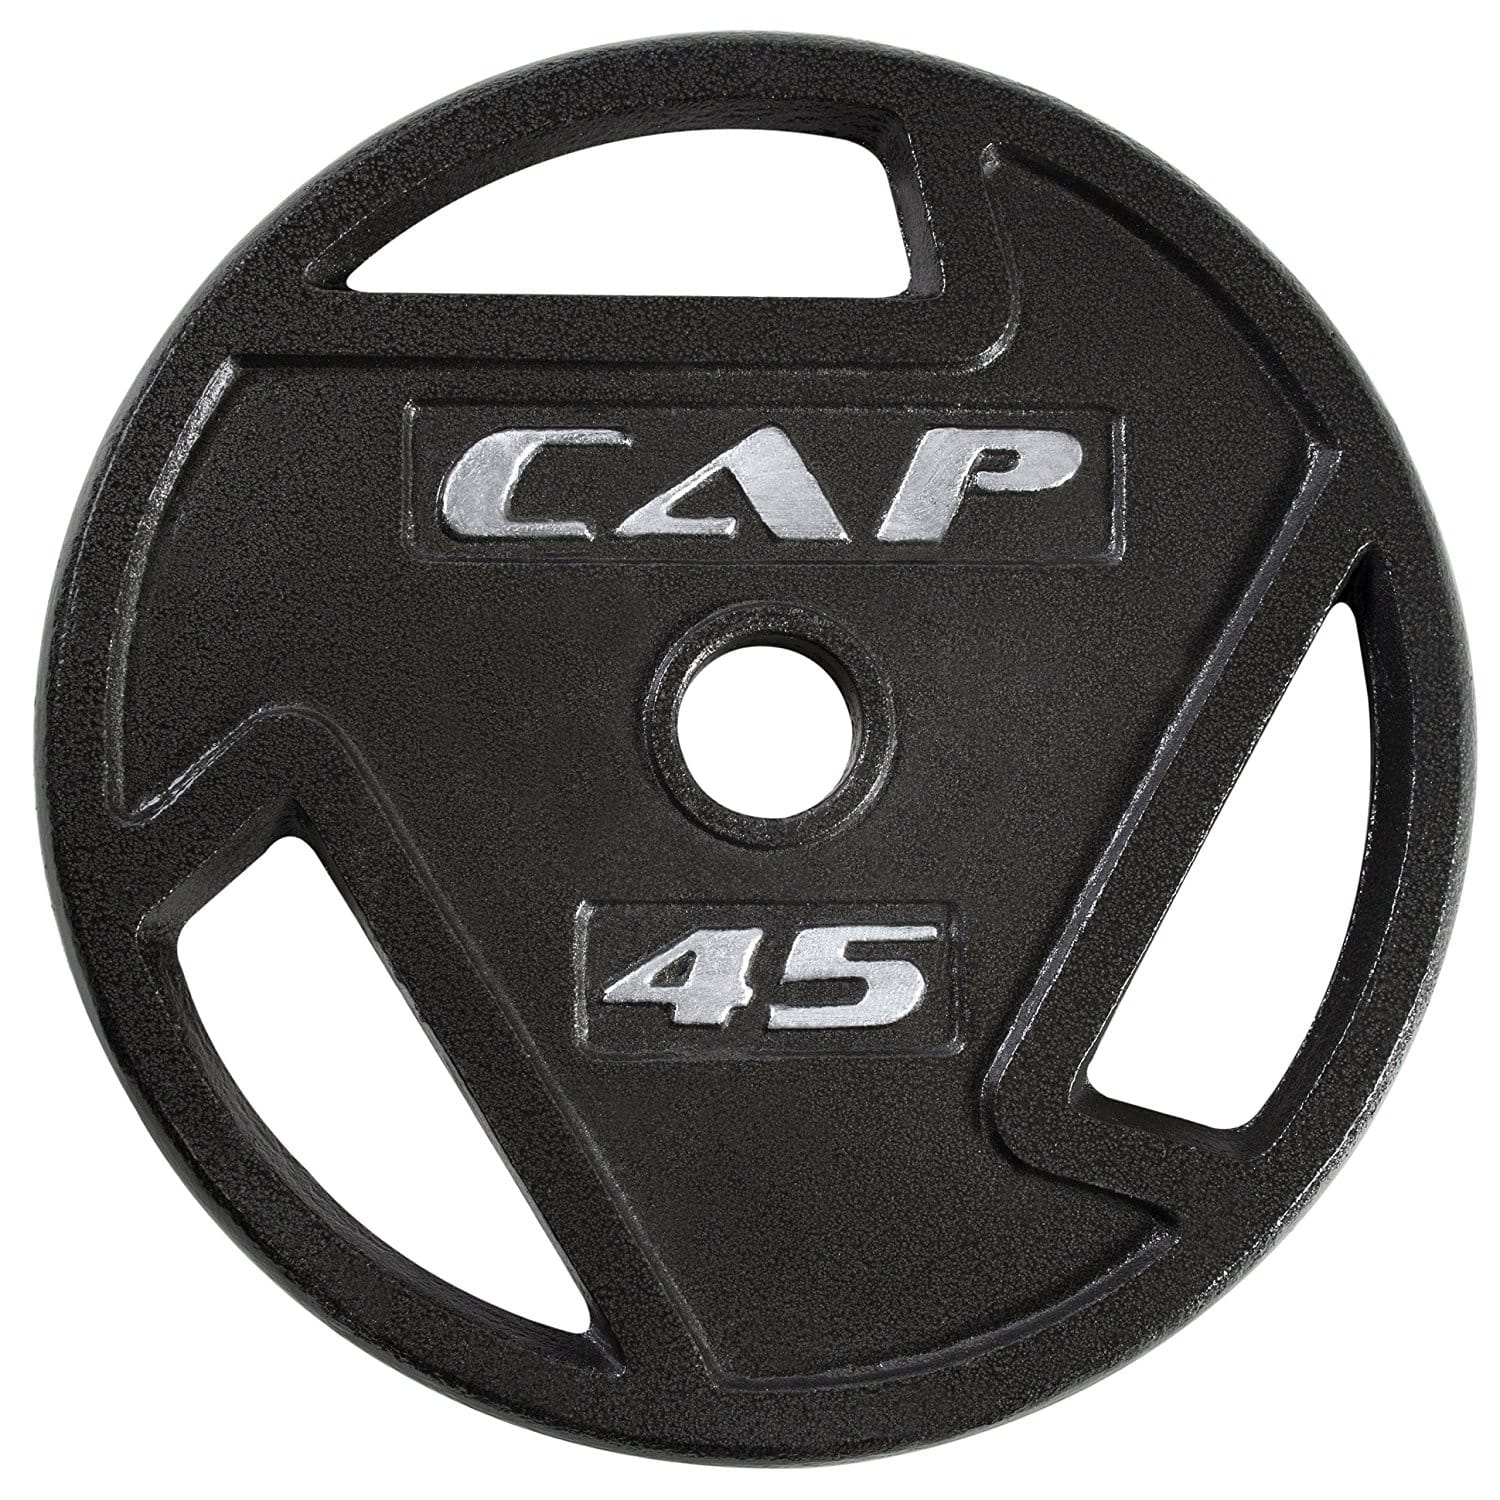 CAP Barbell 2-Inch Olympic Grip Plate 45 lbs $31